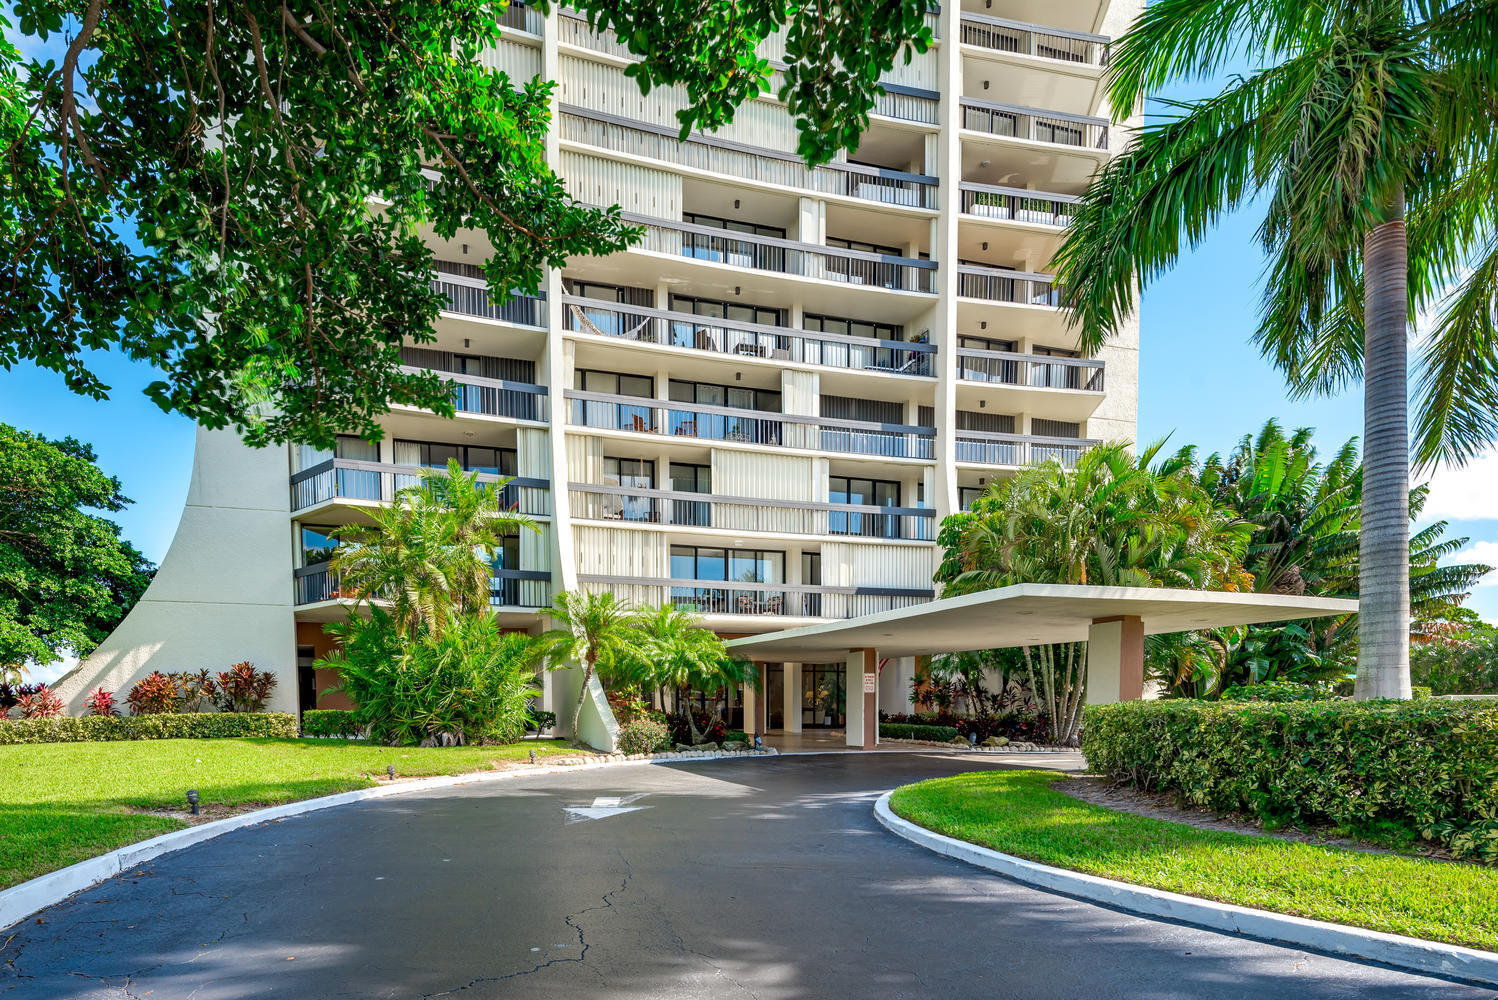 2000 Presidential Way 501, West Palm Beach, FL 33401